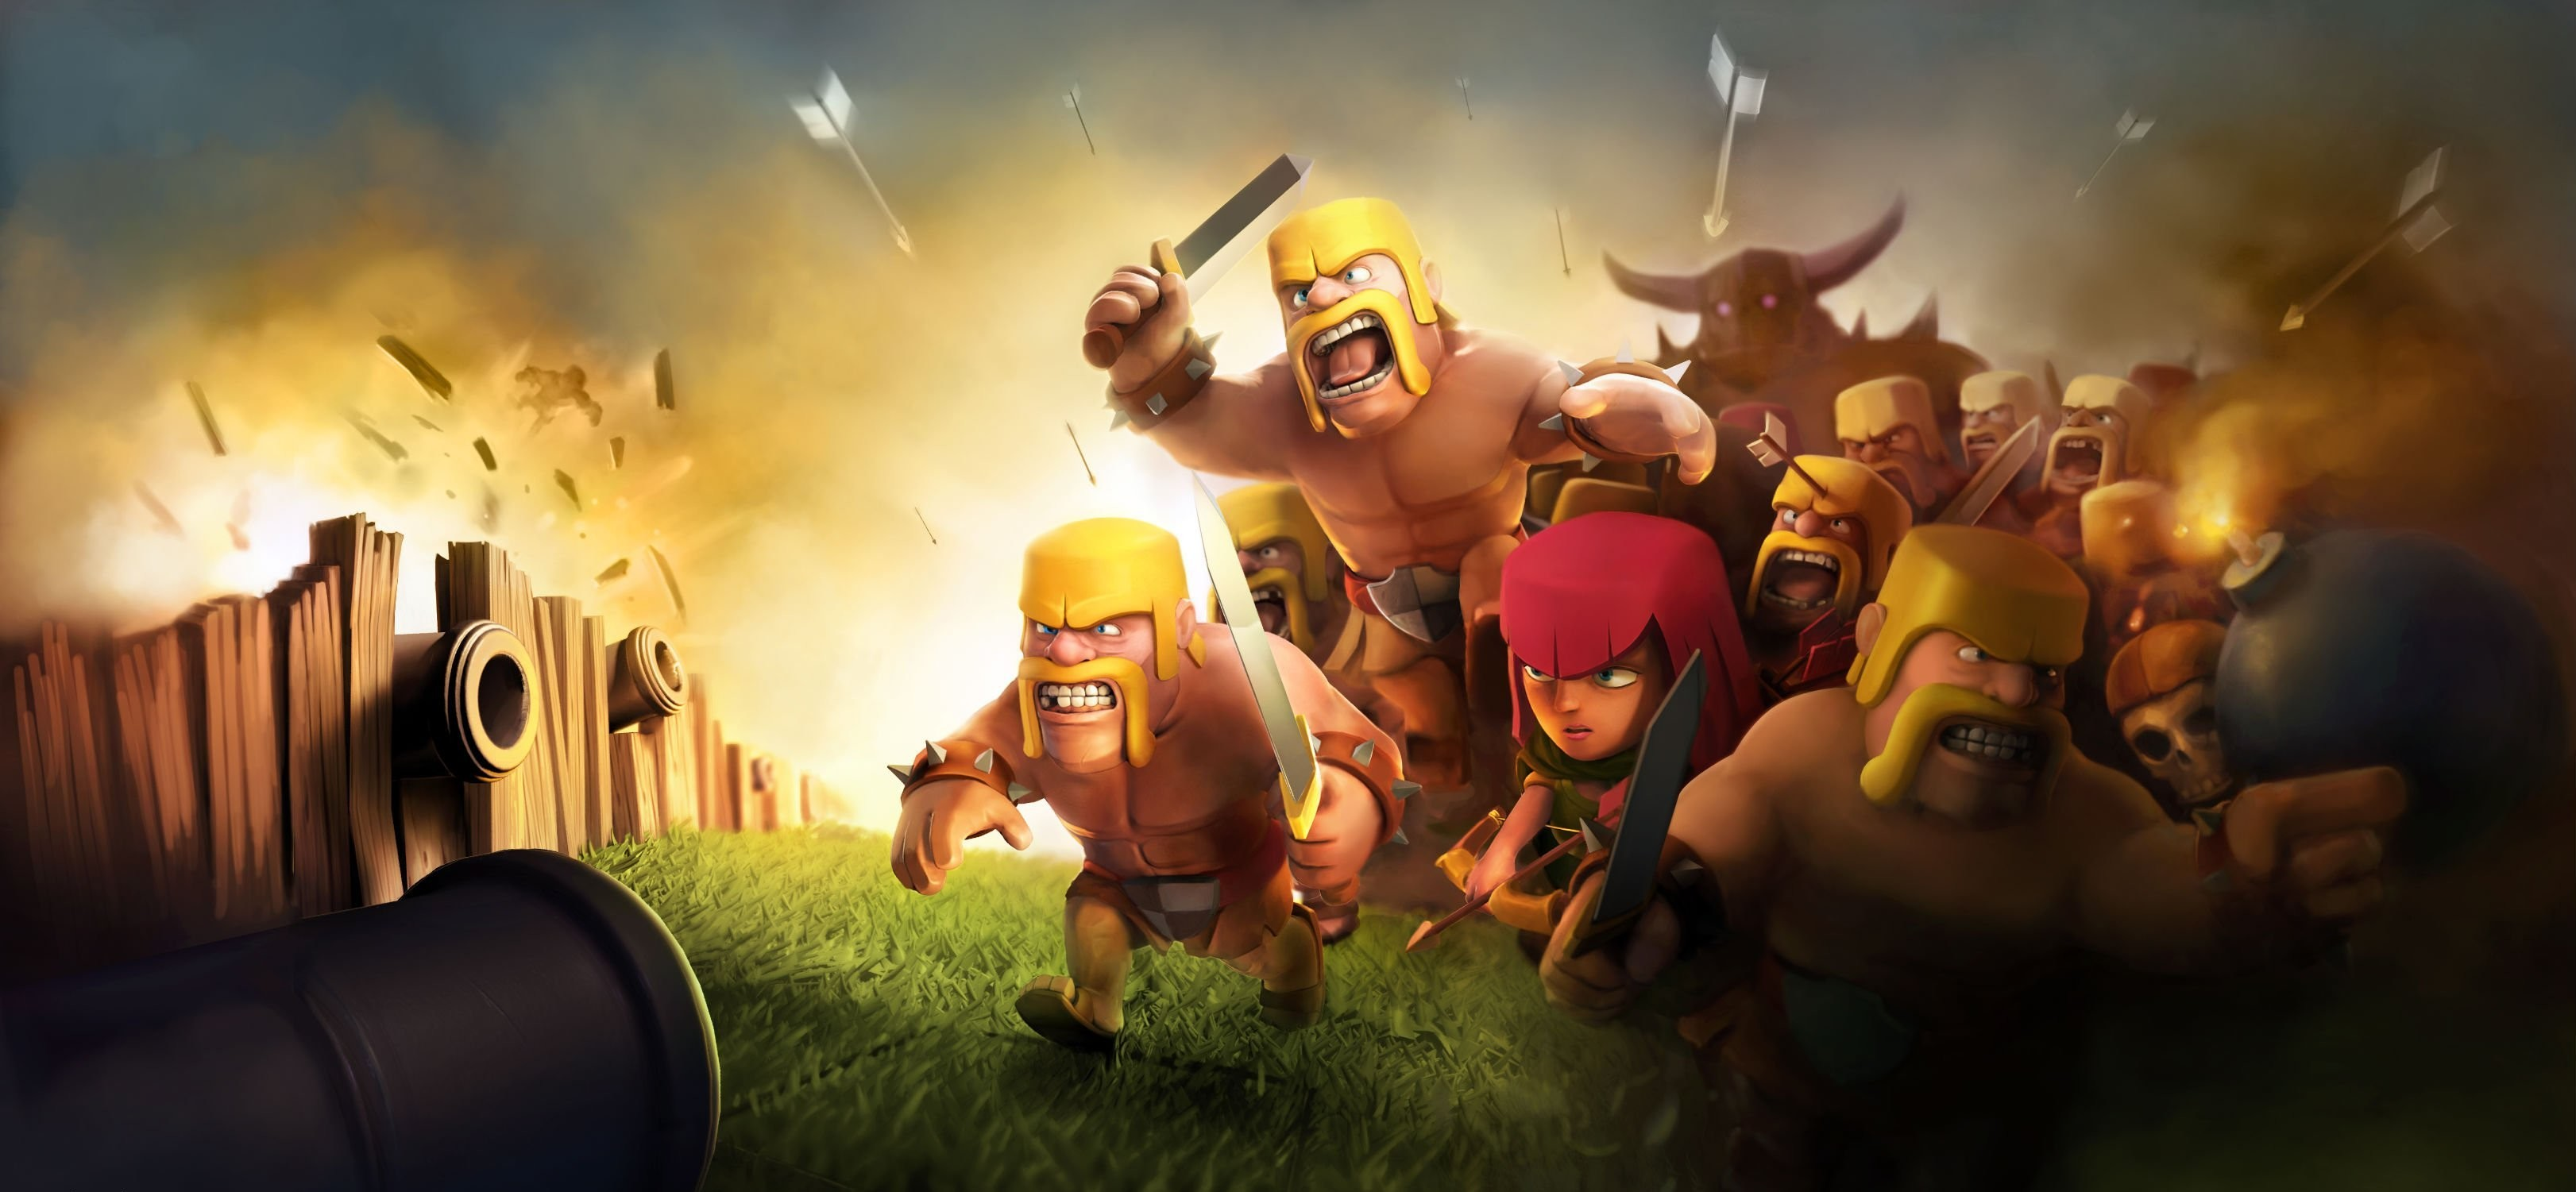 Res: 3243x1501, Clash Of Clans HD (1366x768 Resolution)